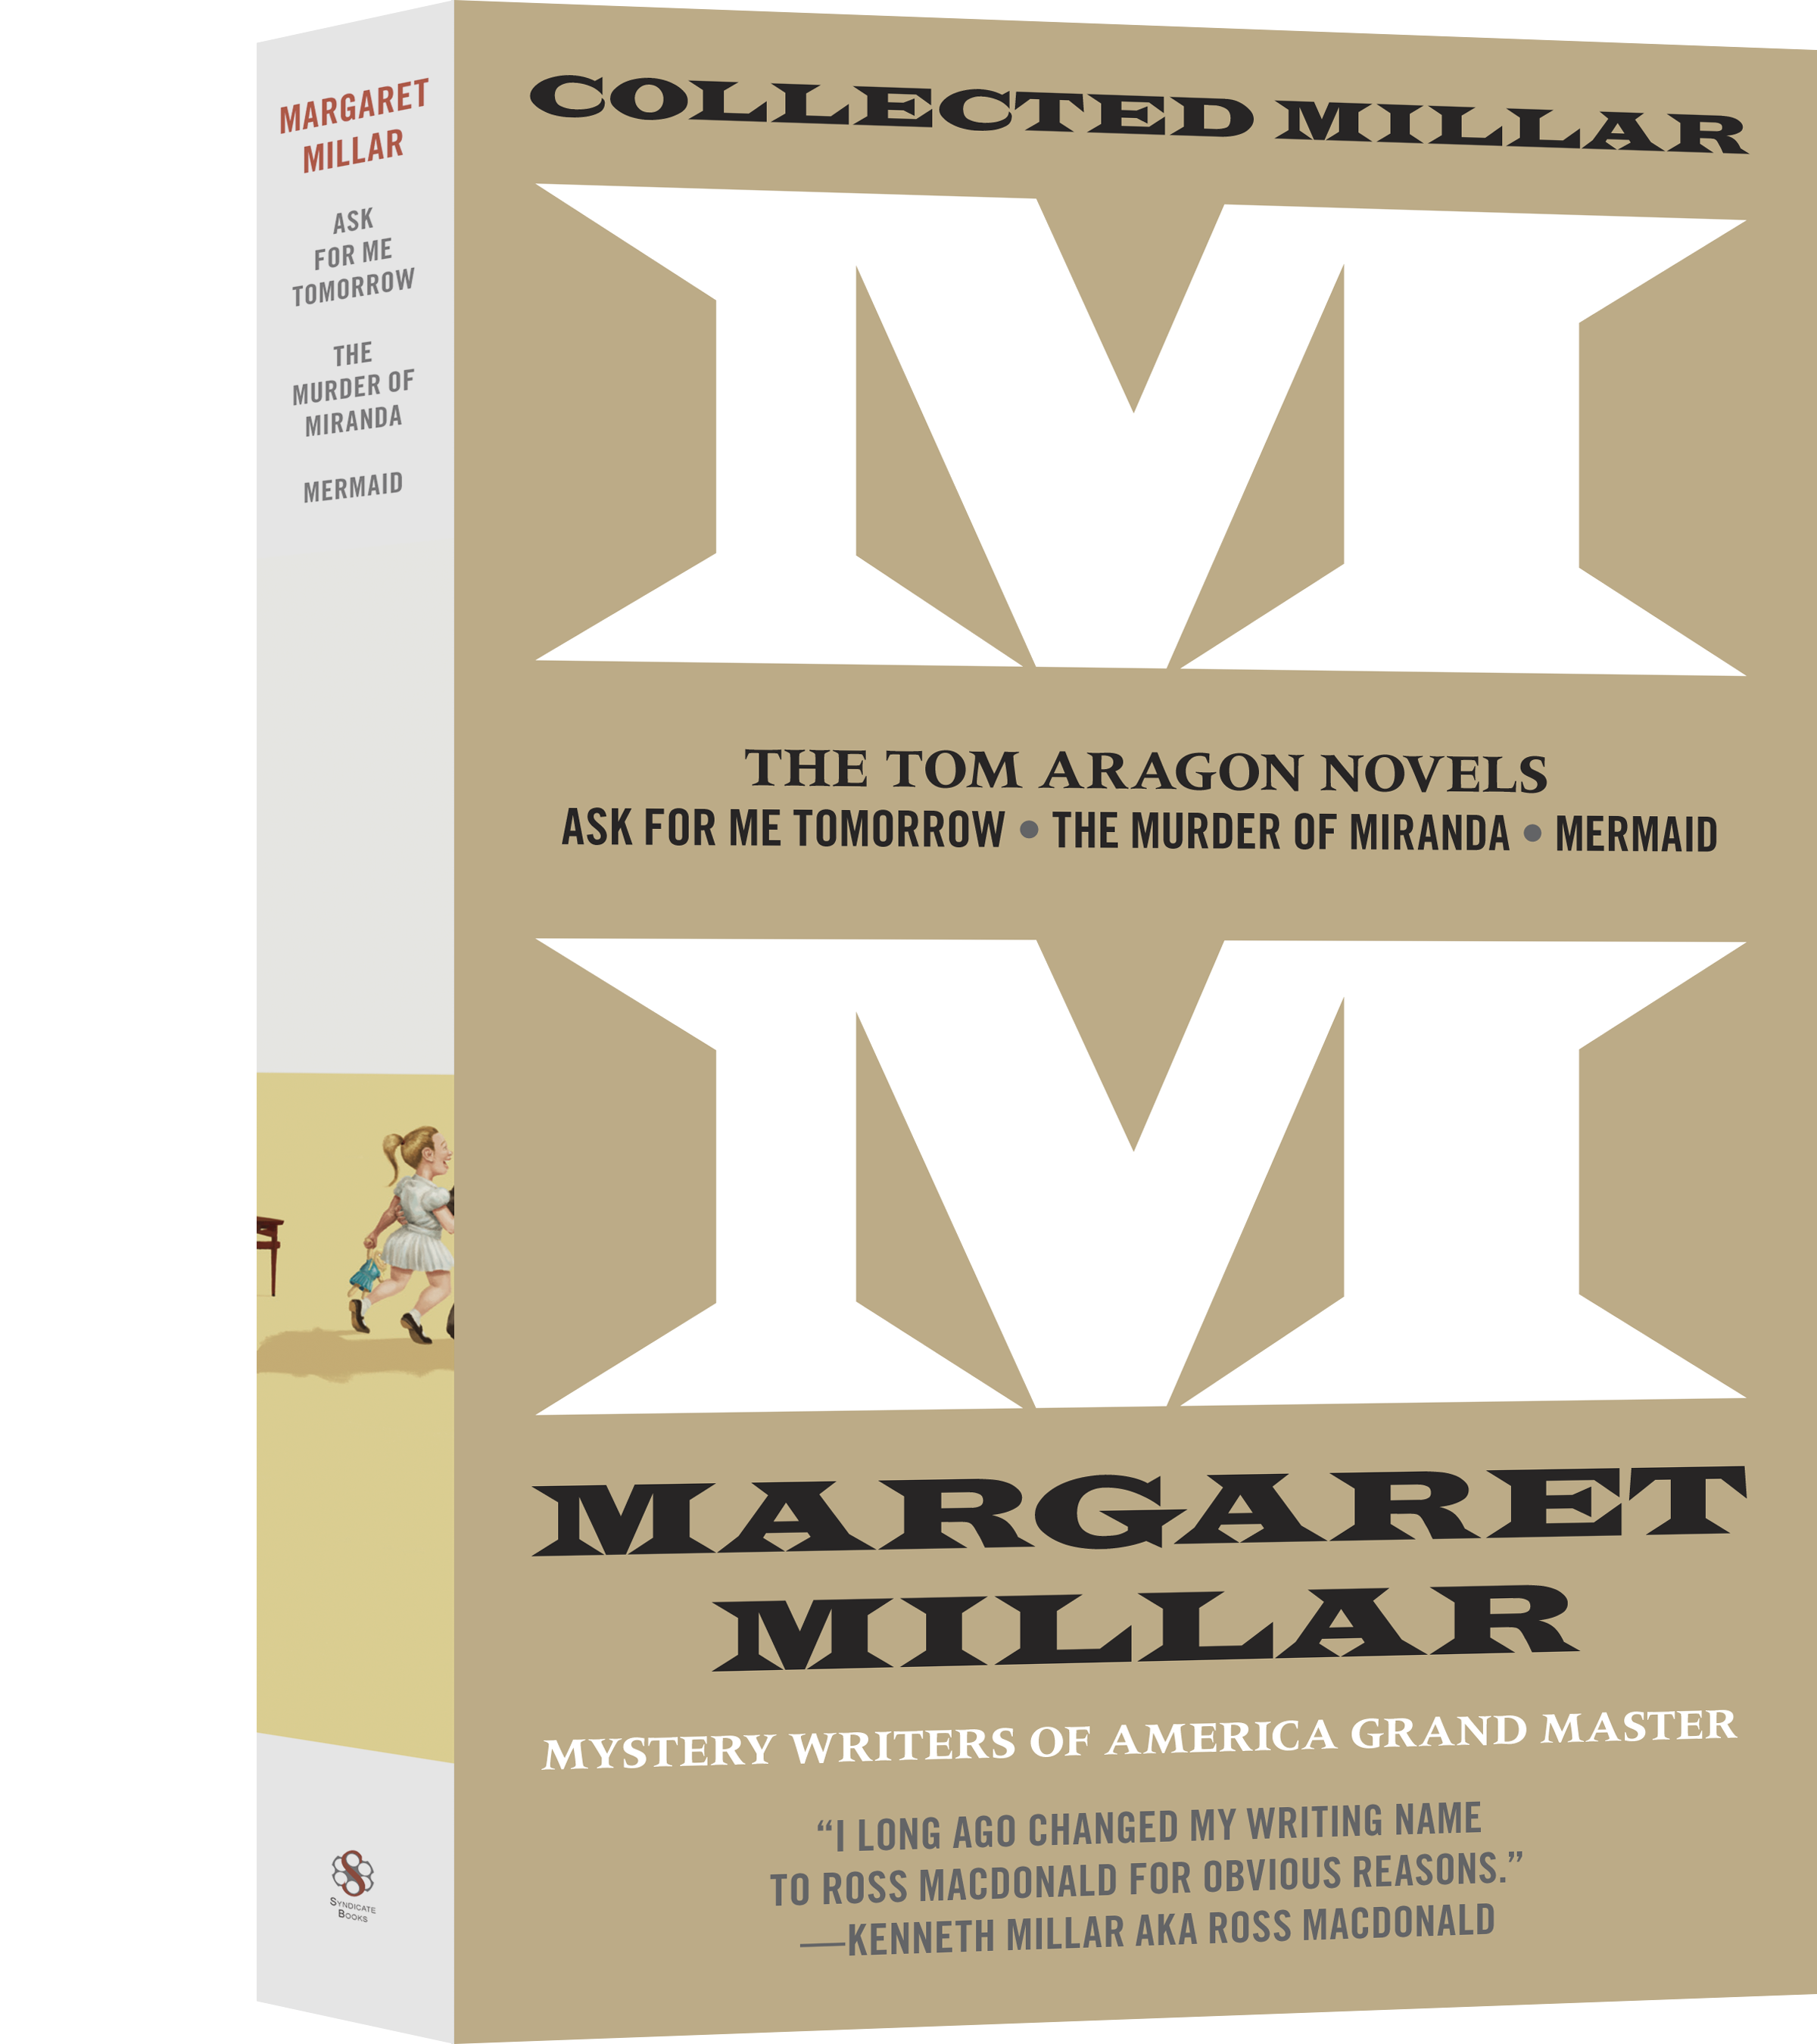 COLLECTED MILLAR: THE TOM ARAGON NOVELS